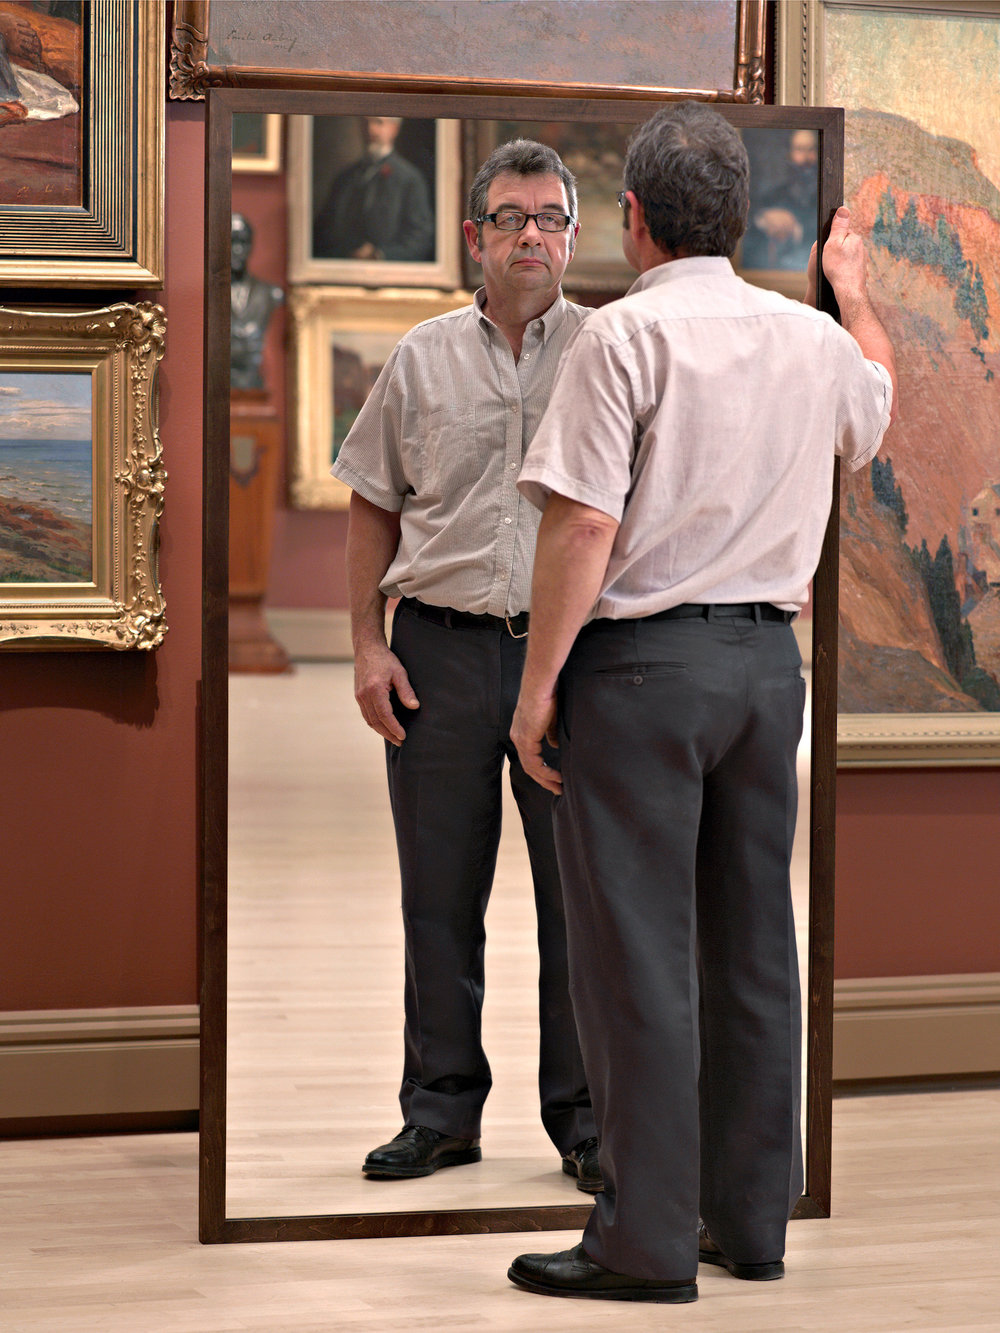 A Man Mirroring I  2008, colour photograph 101 x 76 cm / 40 x 30 in. Edition of 7